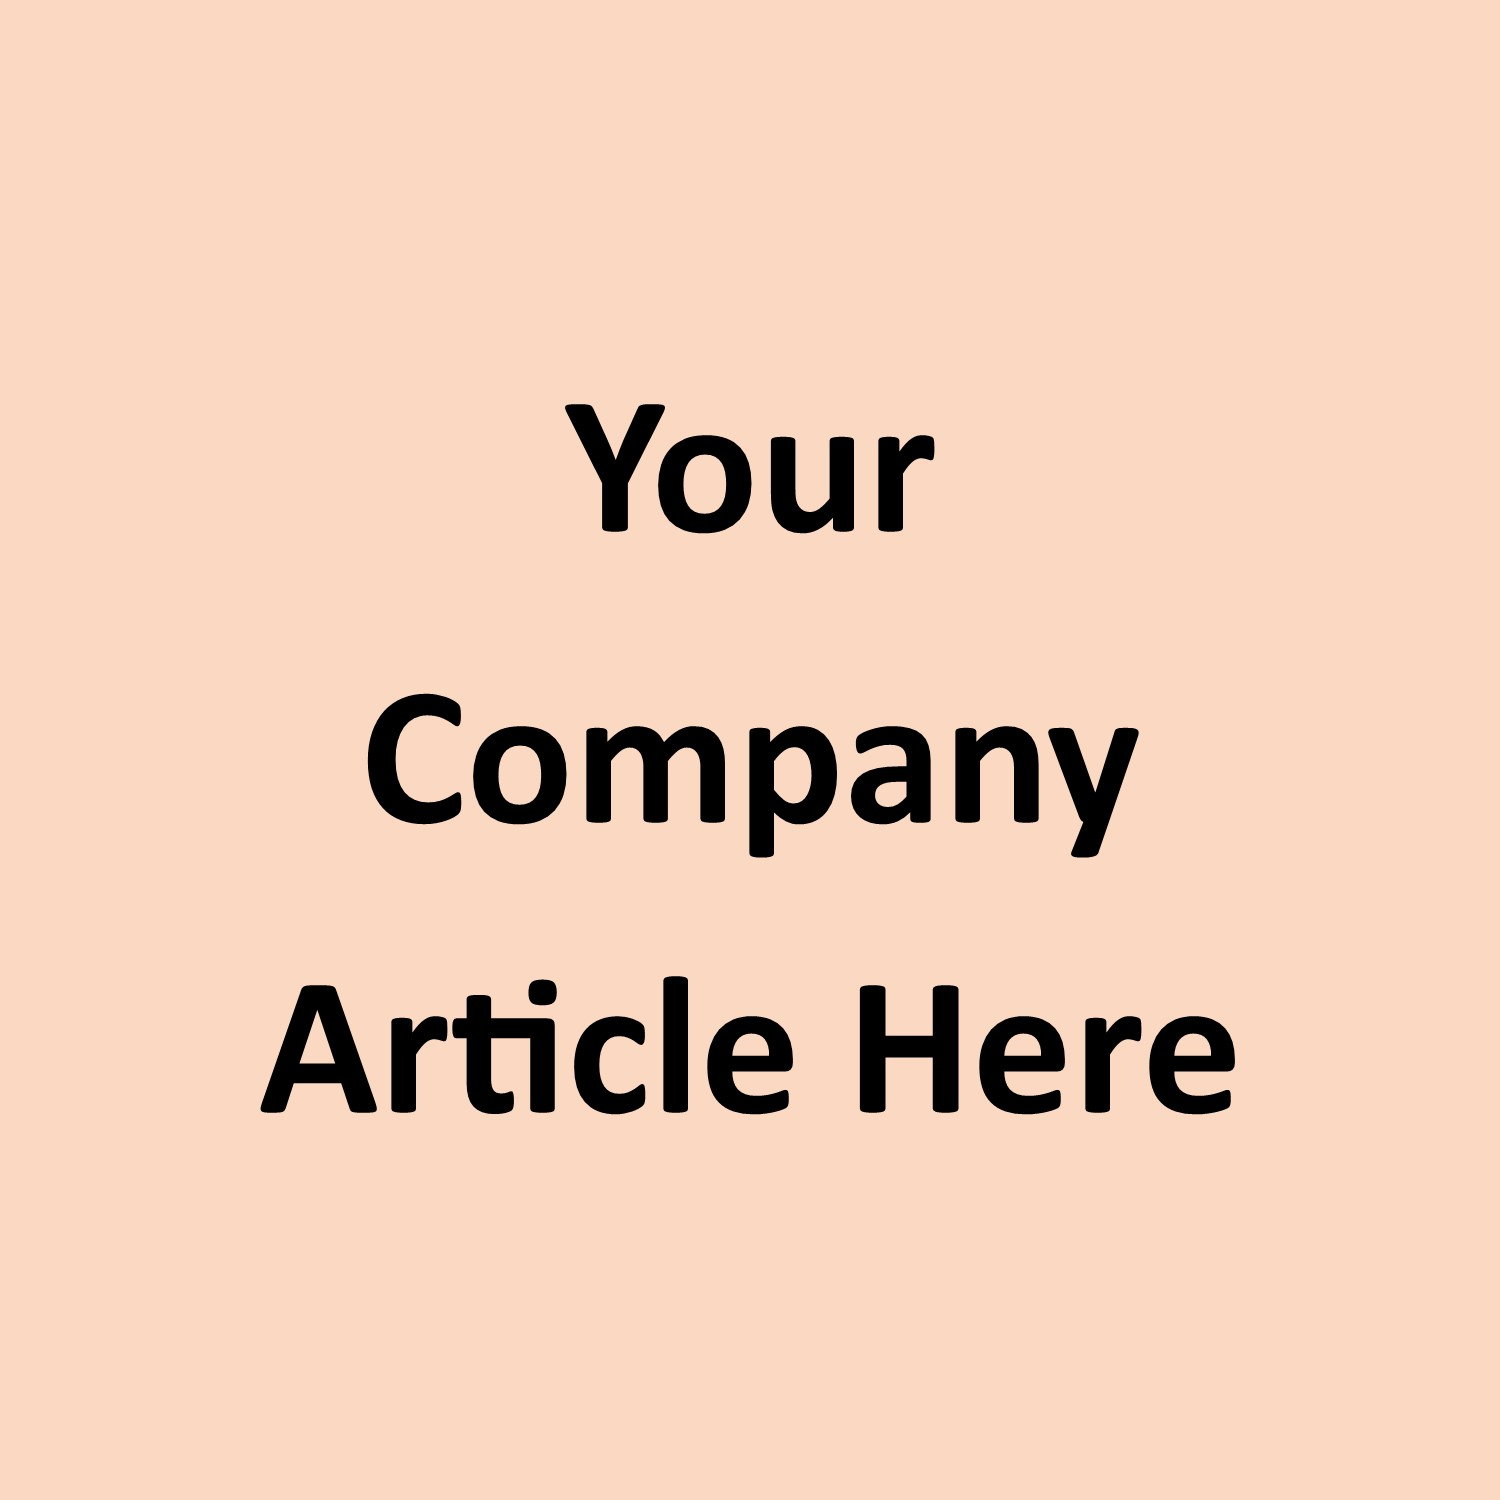 Your Company Article Here